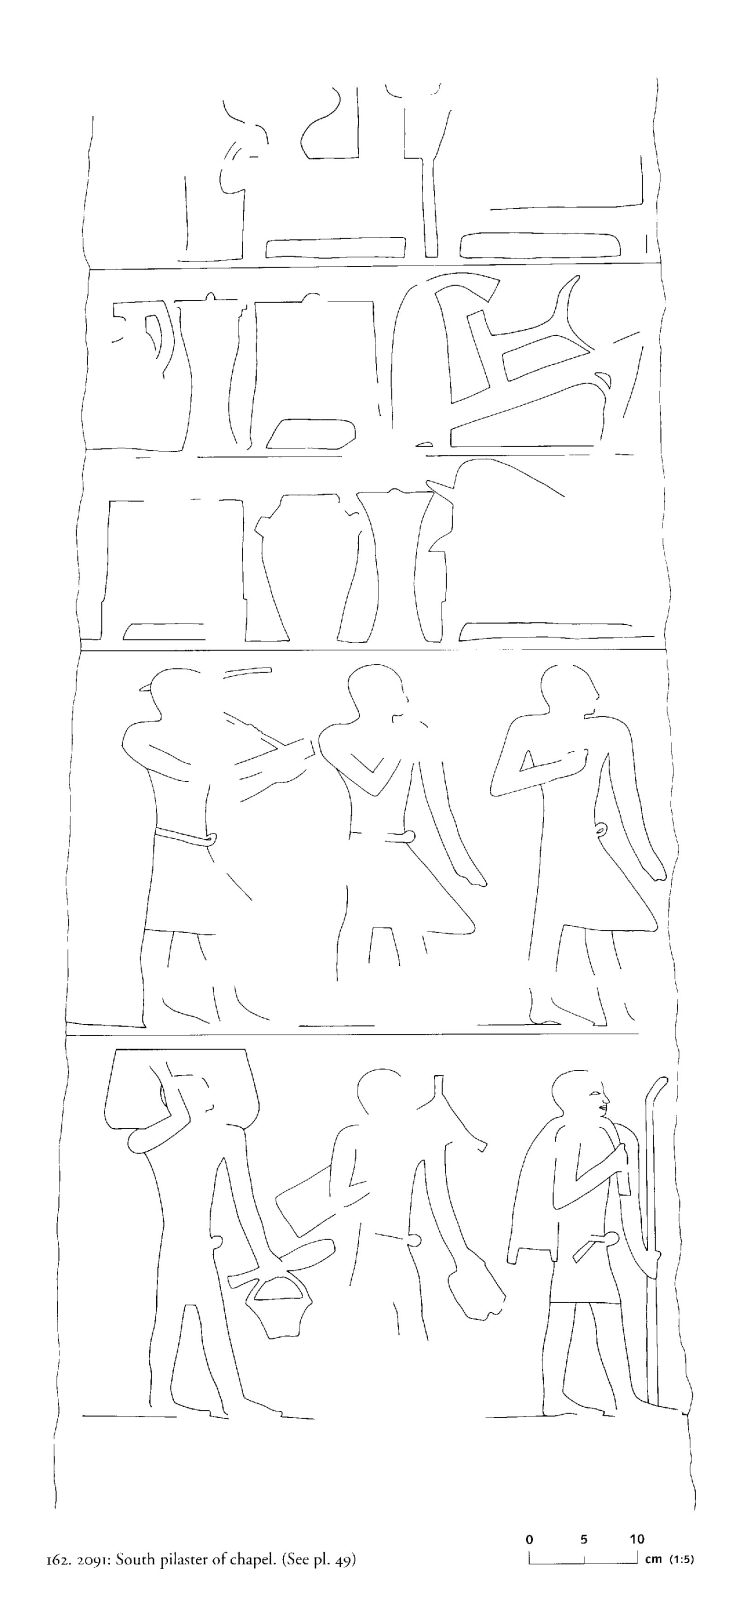 Drawings: G 2091: relief from chapel, S pilaster